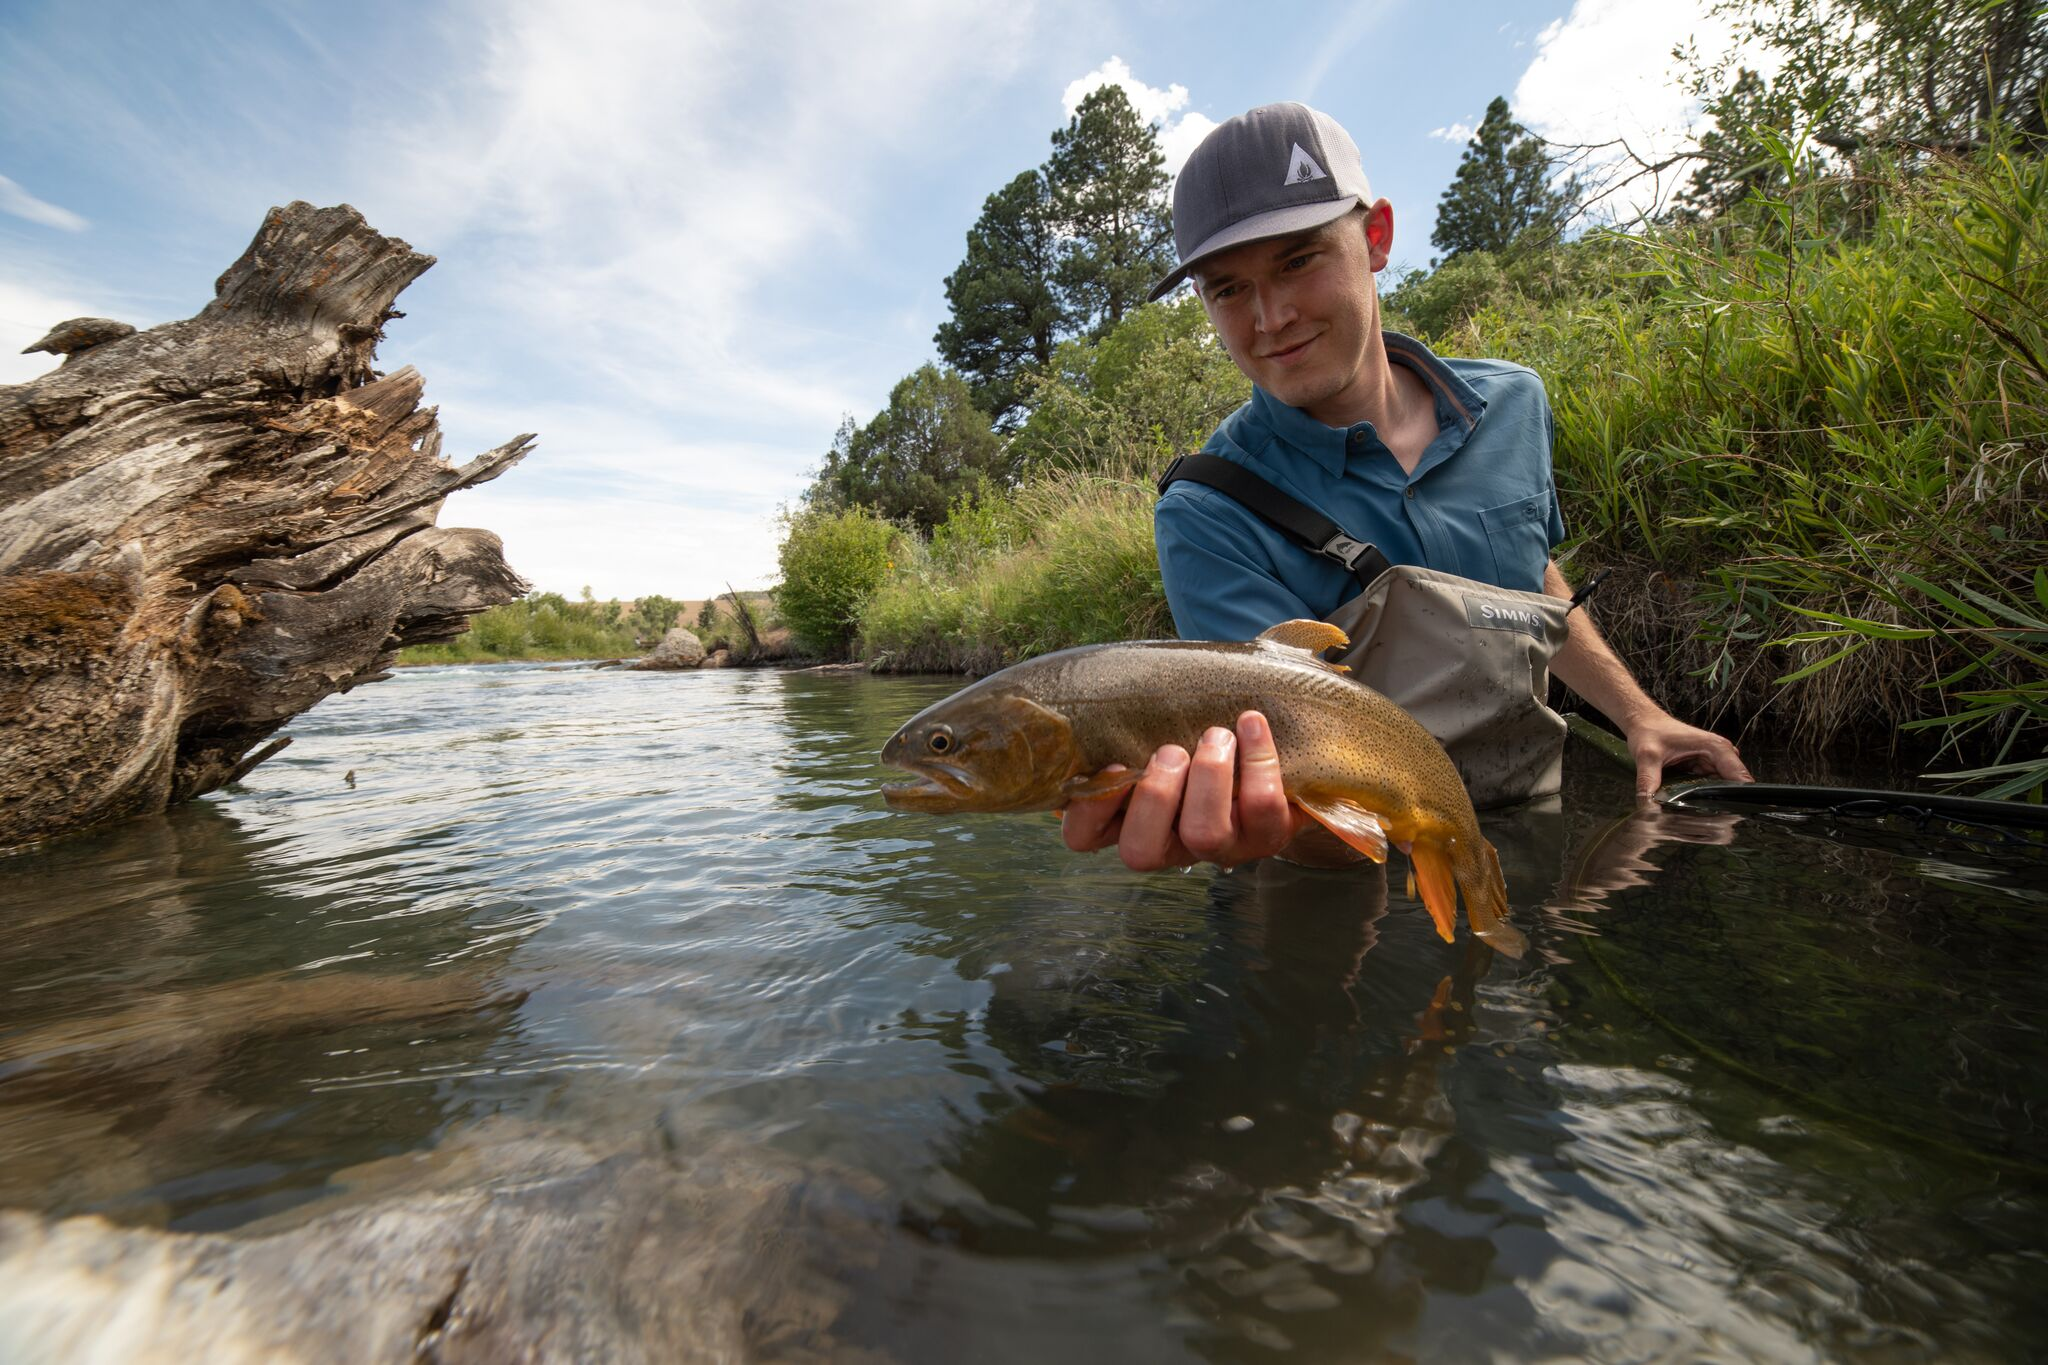 Fly Fishing for river trout in Colorado